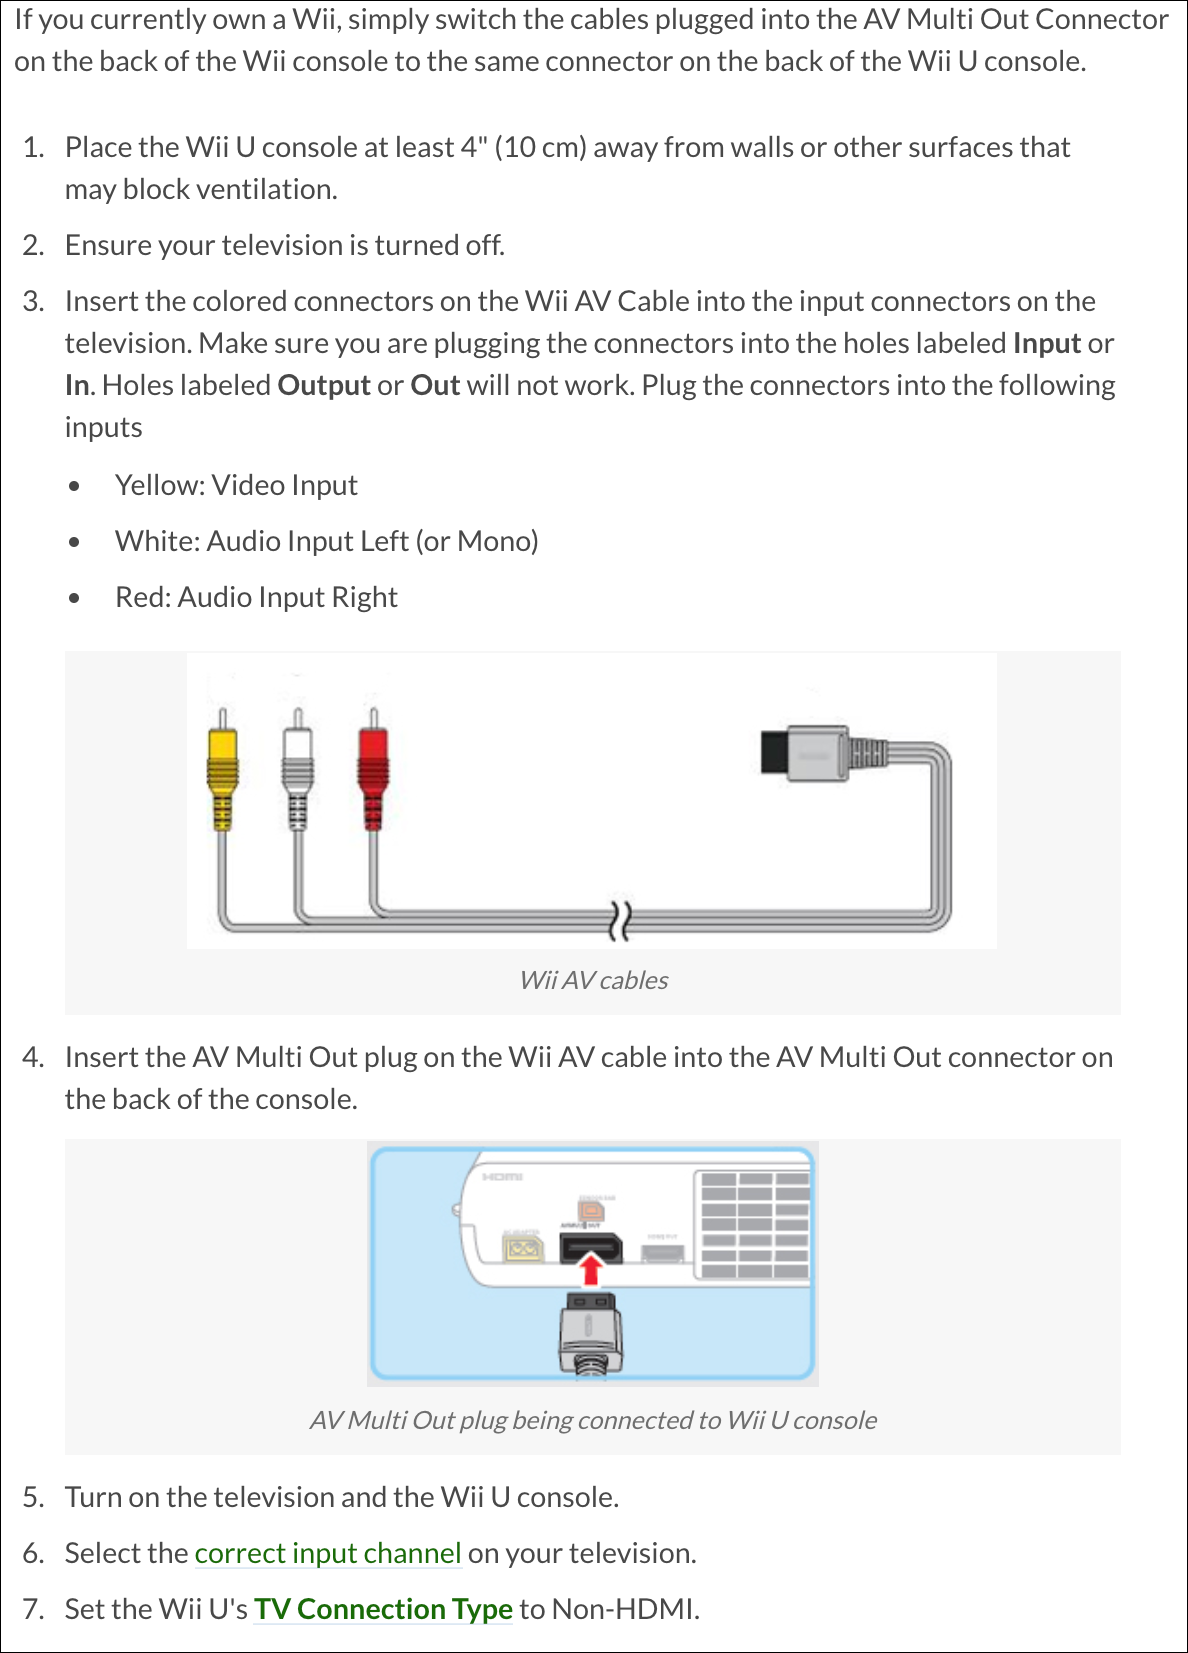 How to Connect Wii AV RCA Cable to TV